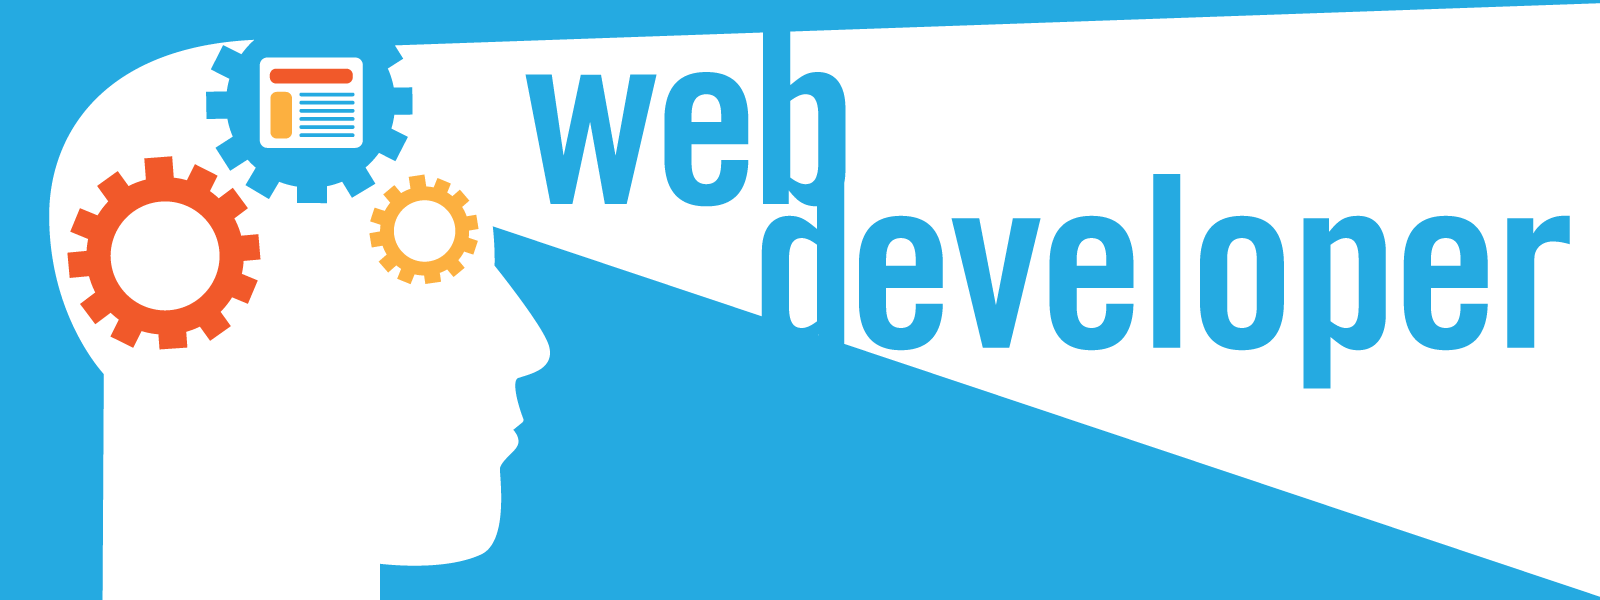 Your Own website developer in html,  css,  Javascript,  jQuery,  PHP etc